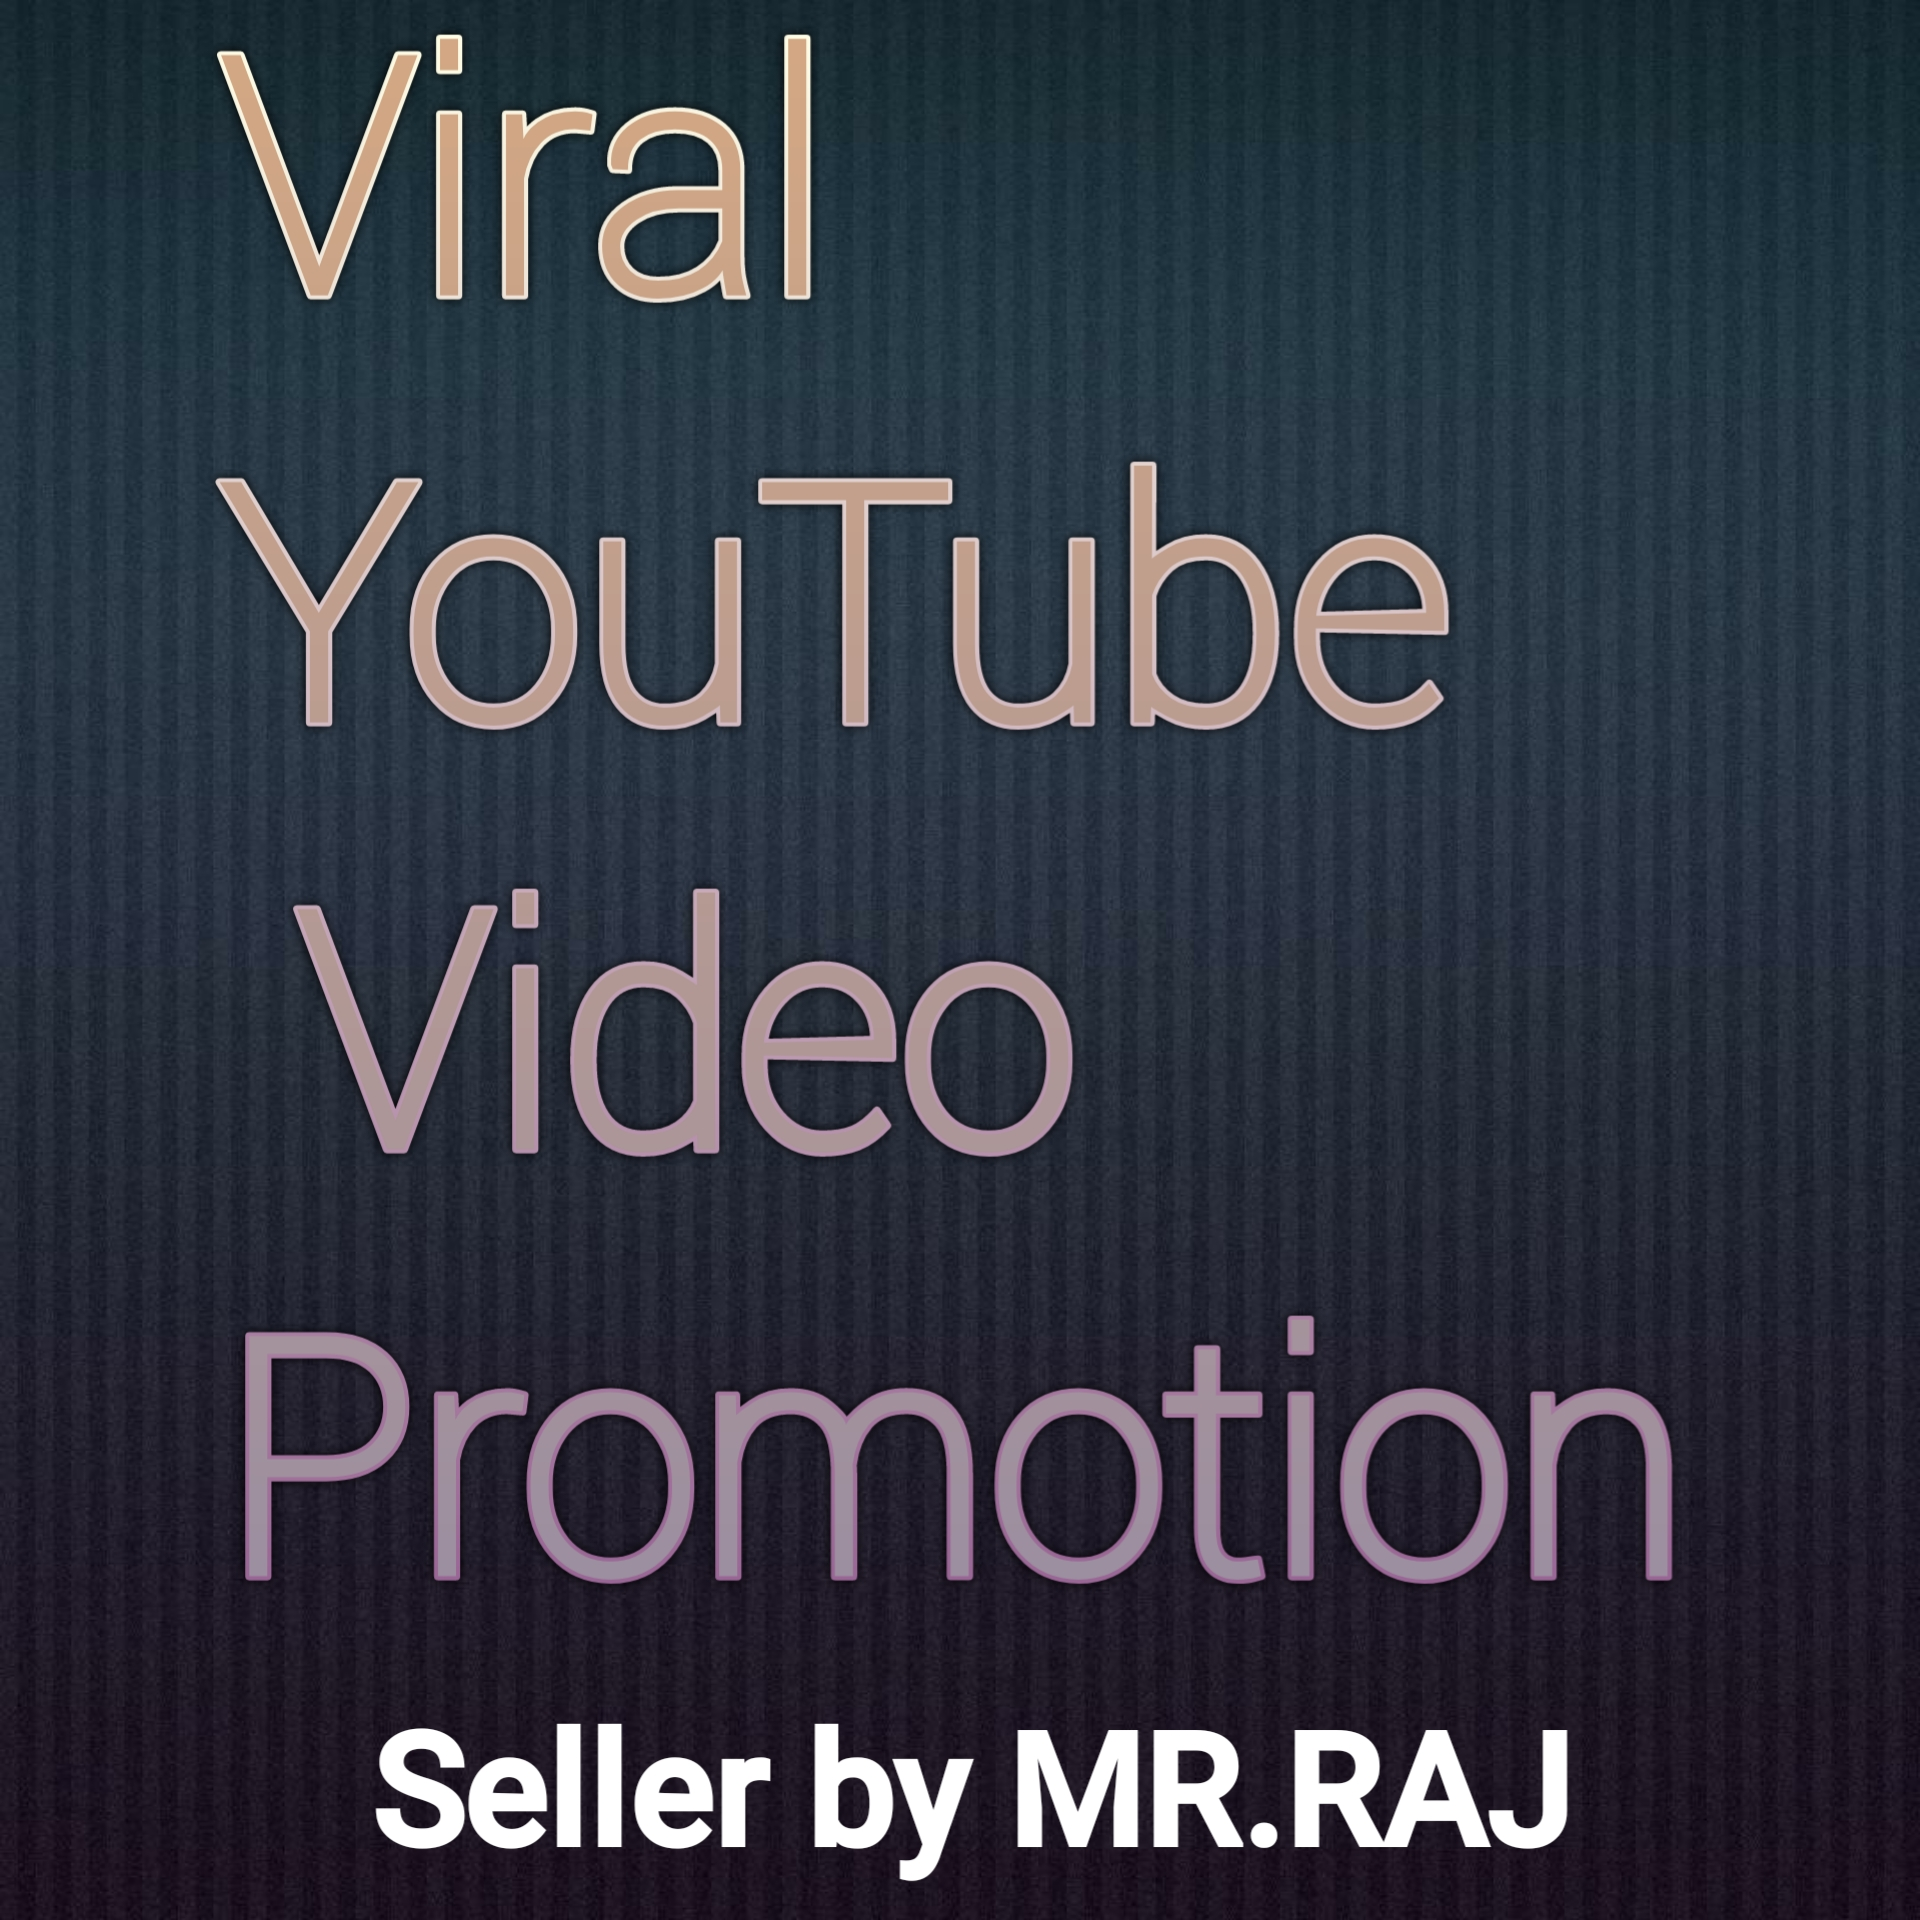 Great opportunity YouTube video promotion.